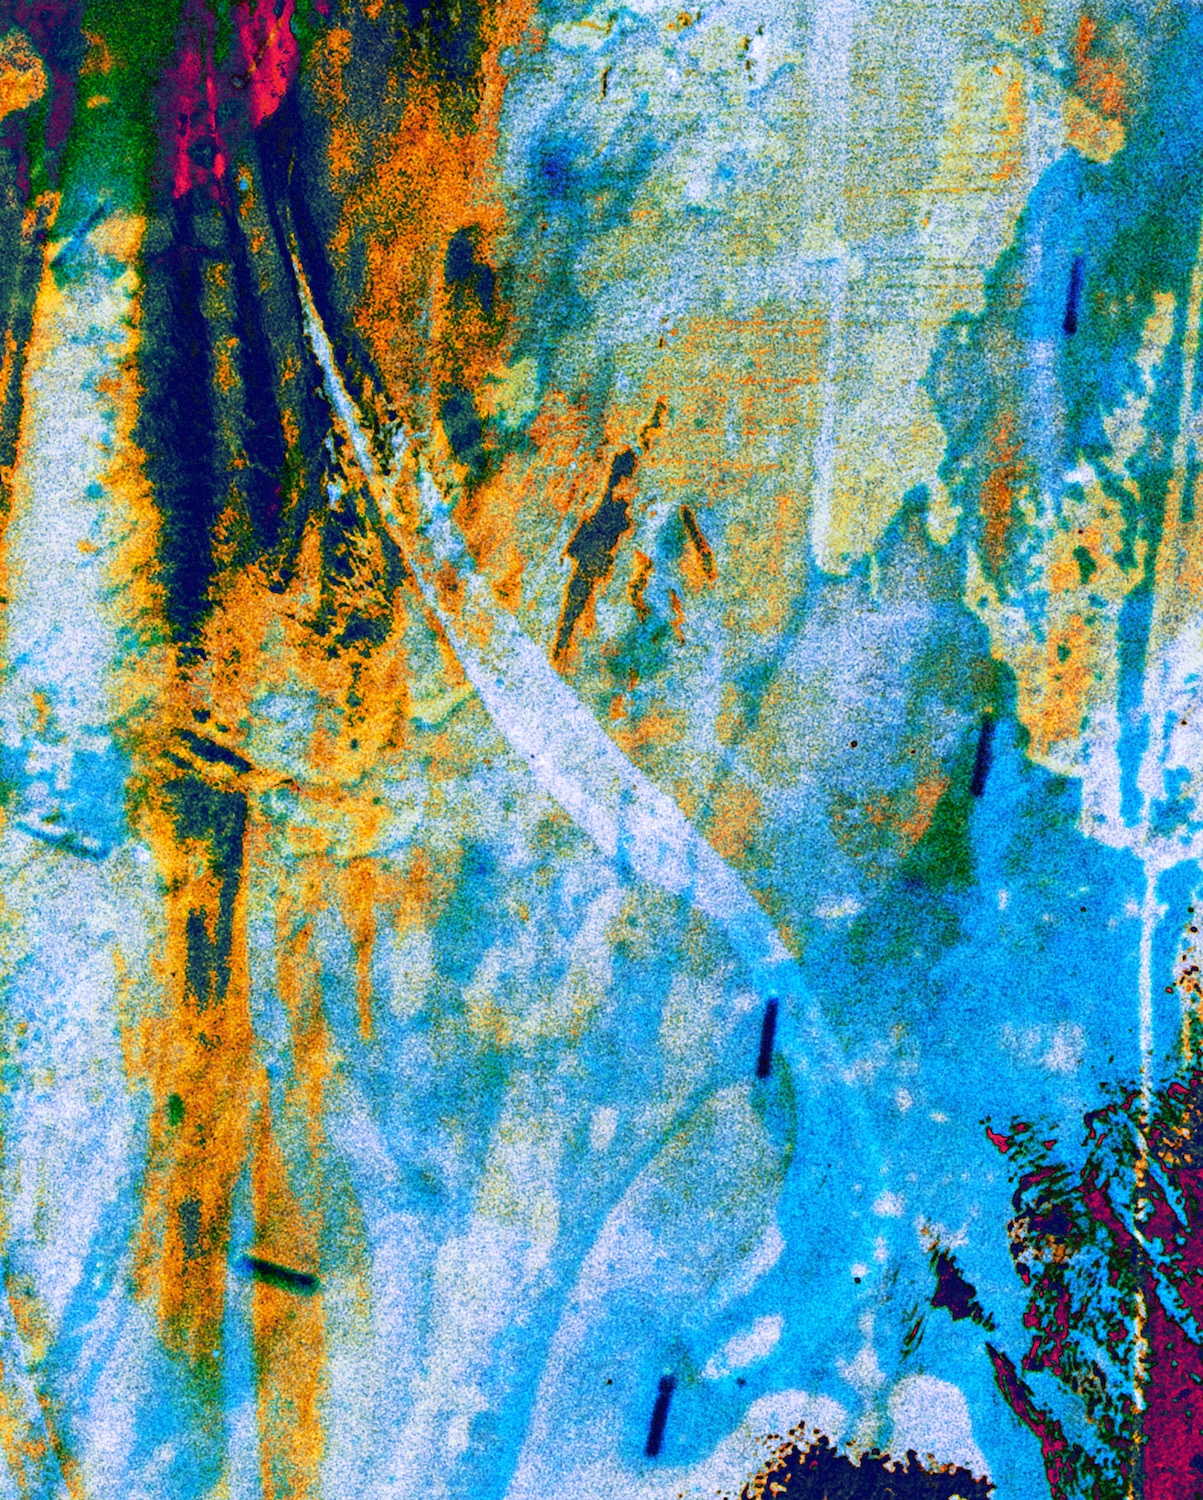 Blue Yellow and Black abstract painting